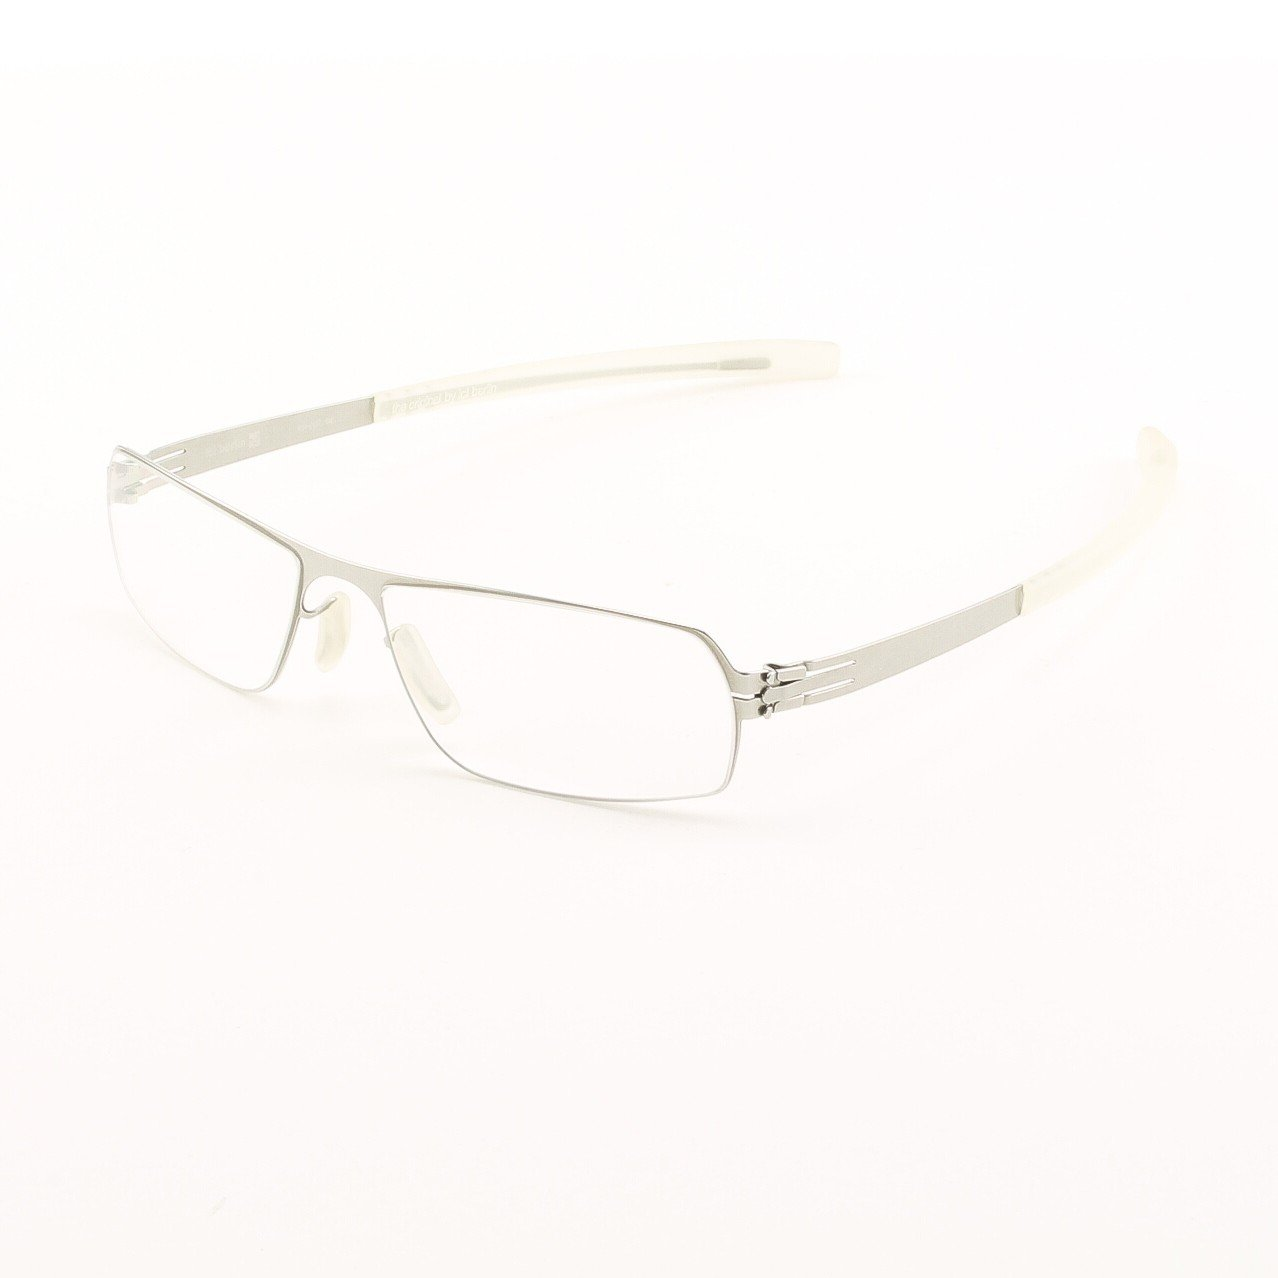 ic! Berlin Anni Eyeglasses Col. Chrome with Clear Lenses